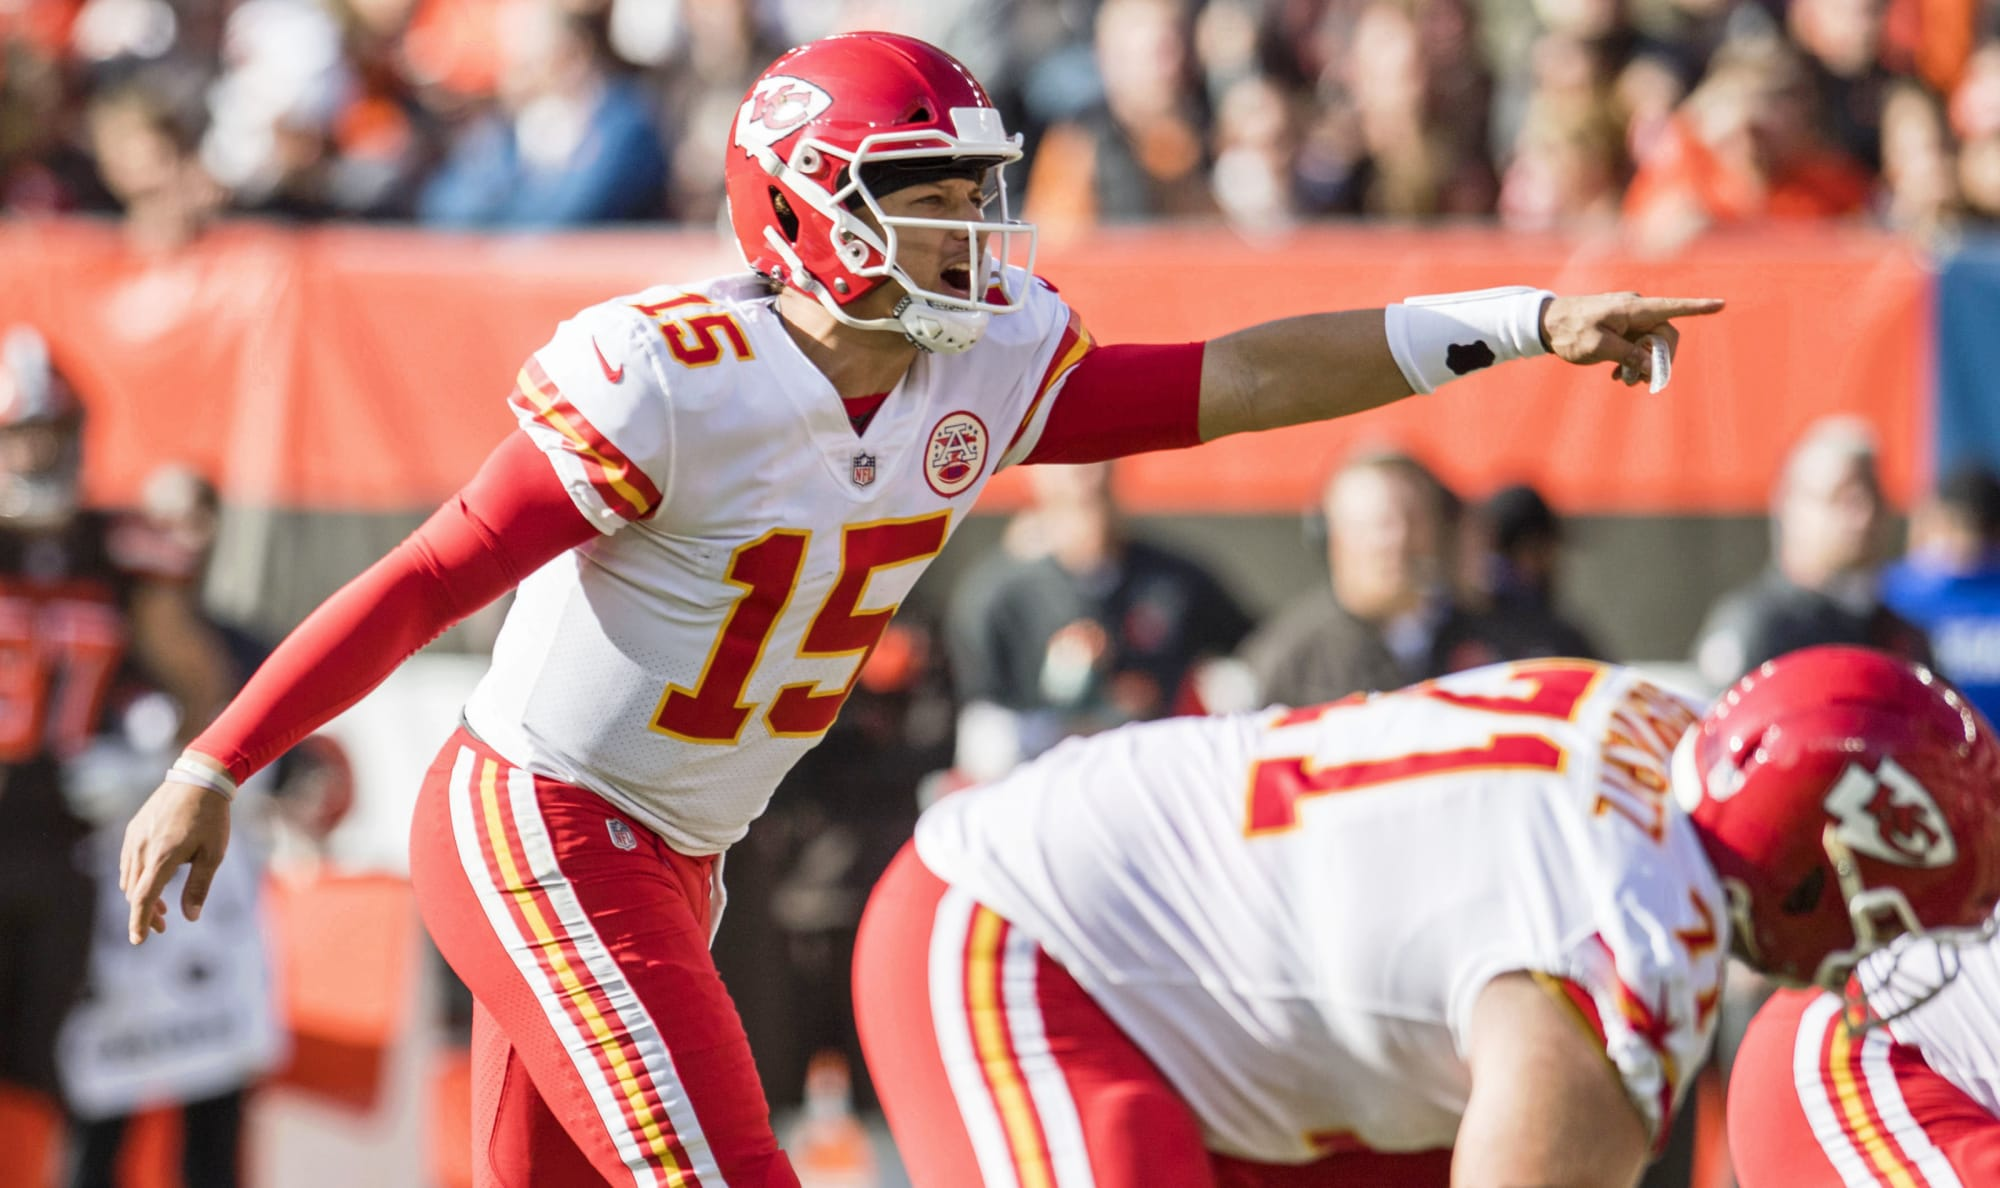 Patrick Mahomes and Chiefs got great news at practice on Wednesday thumbnail